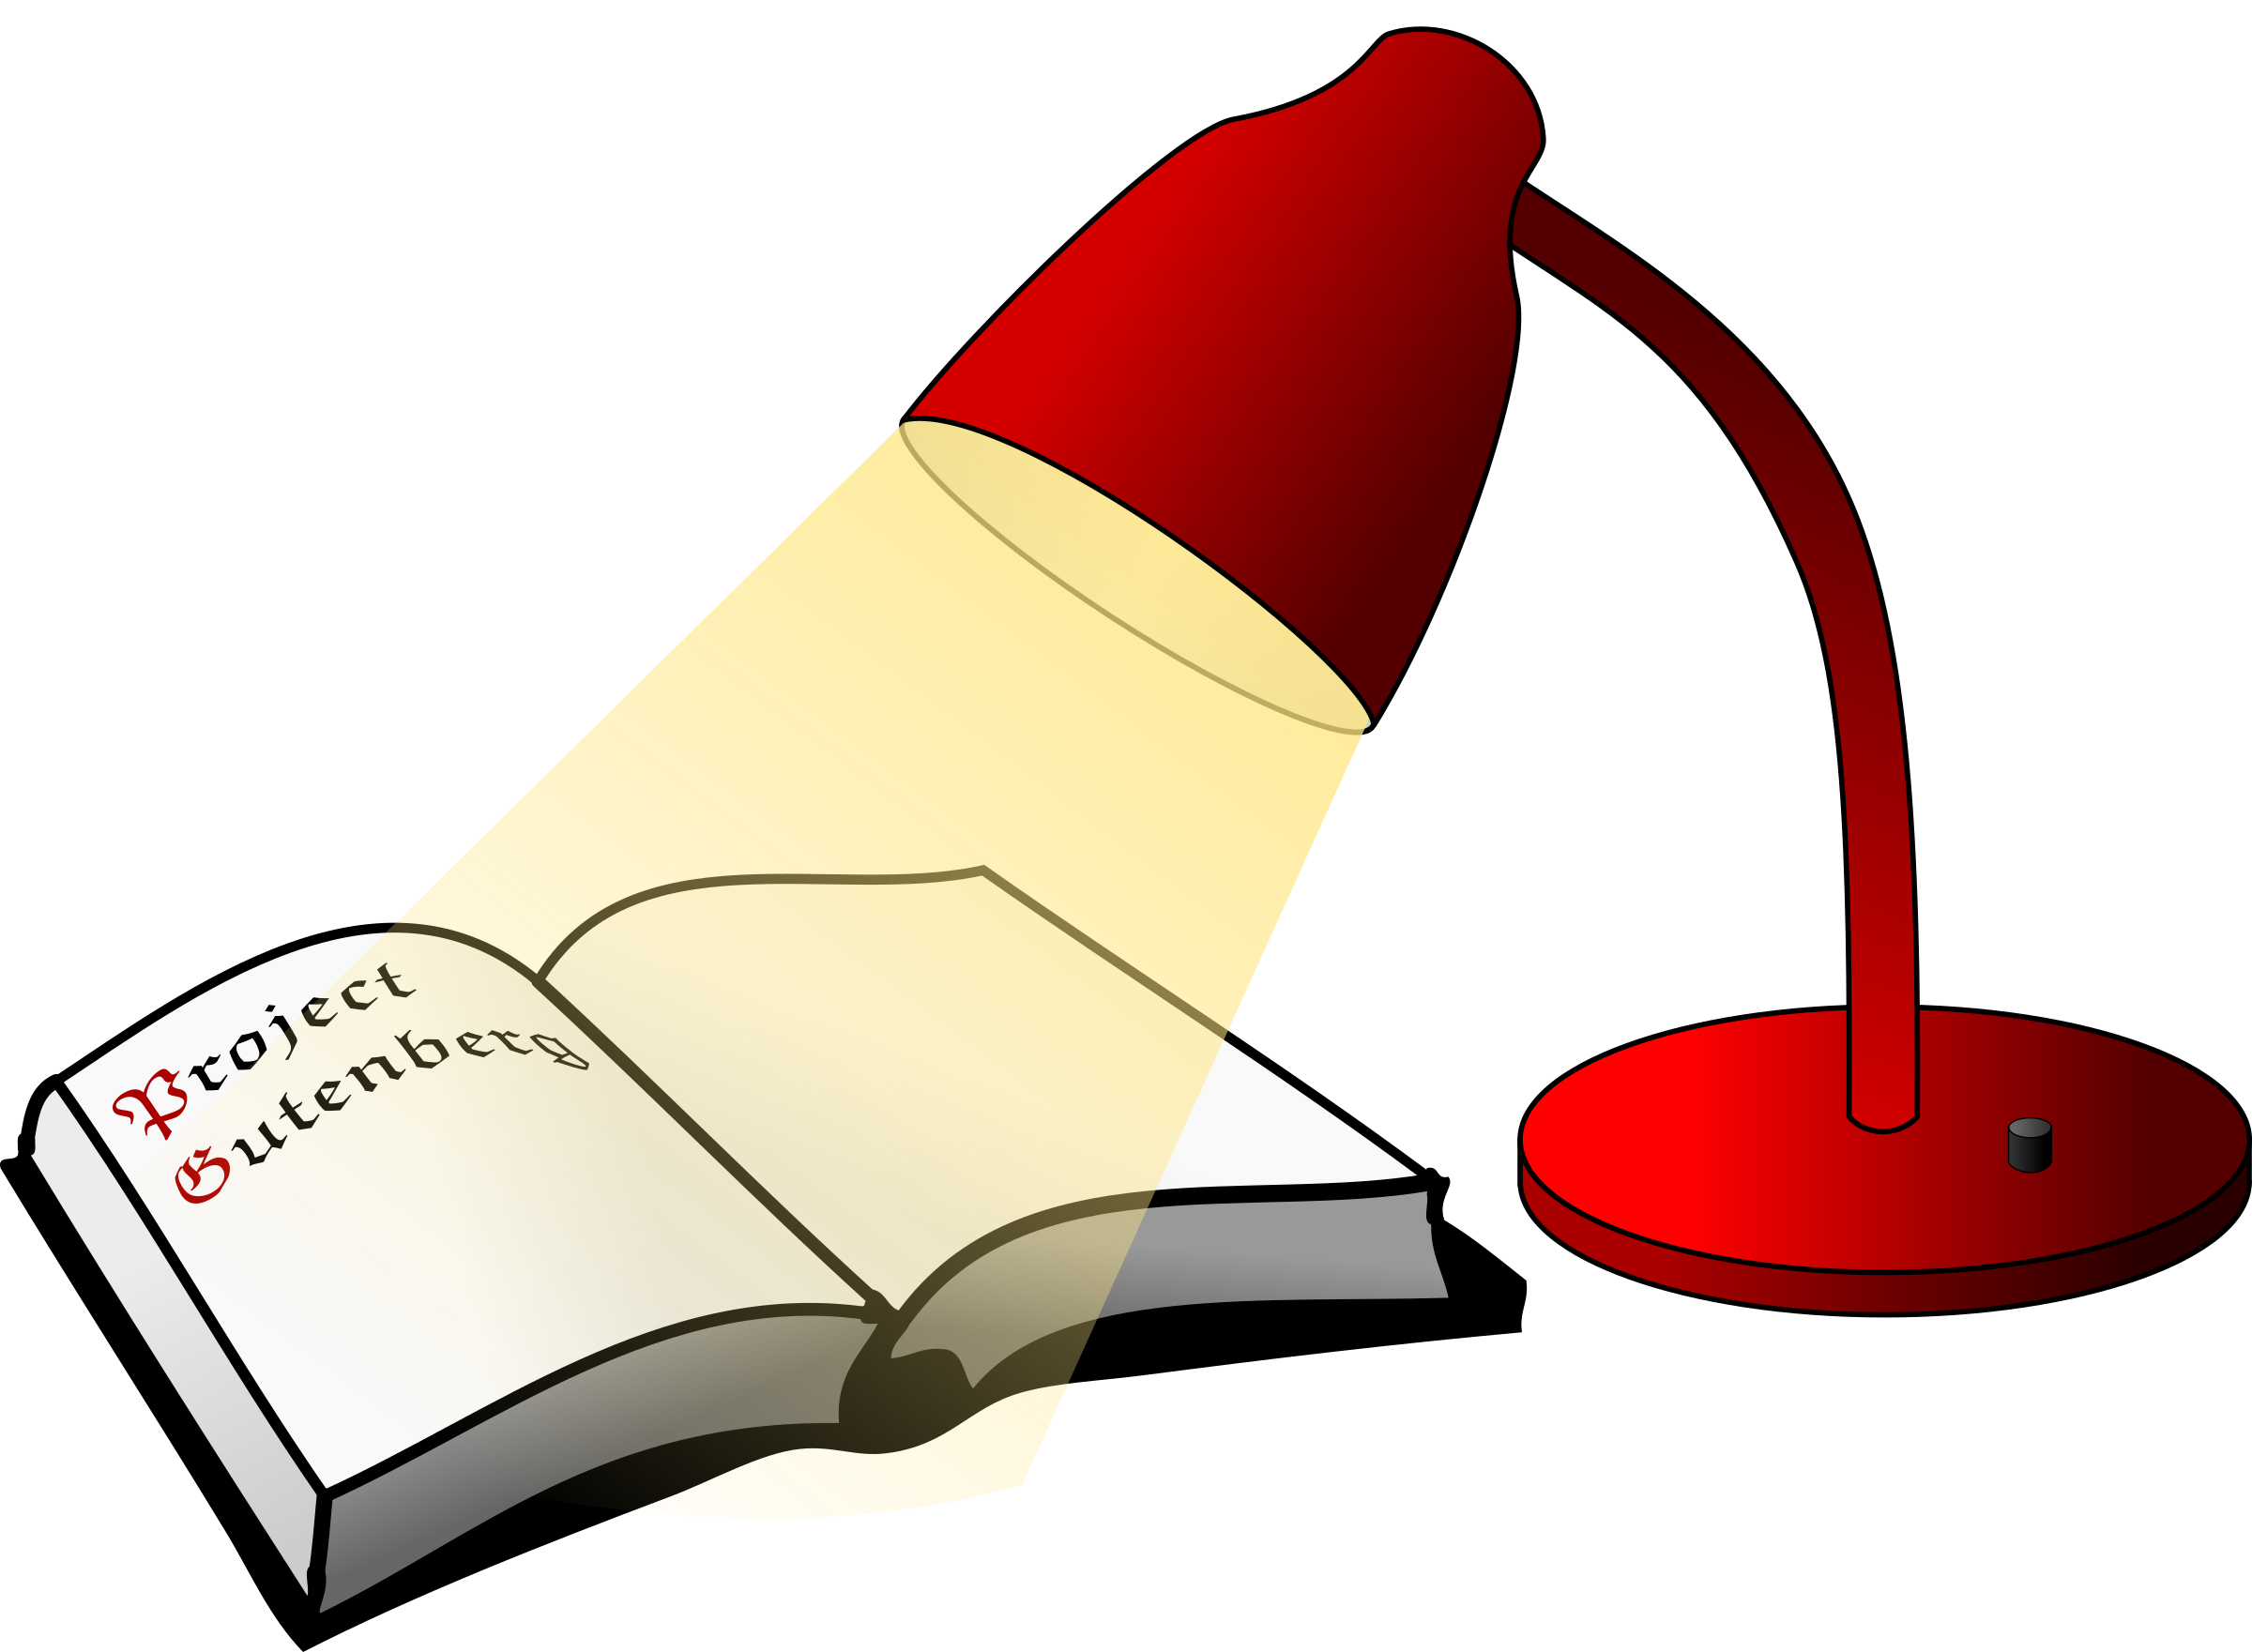 Book and light big. Lamp clipart deya